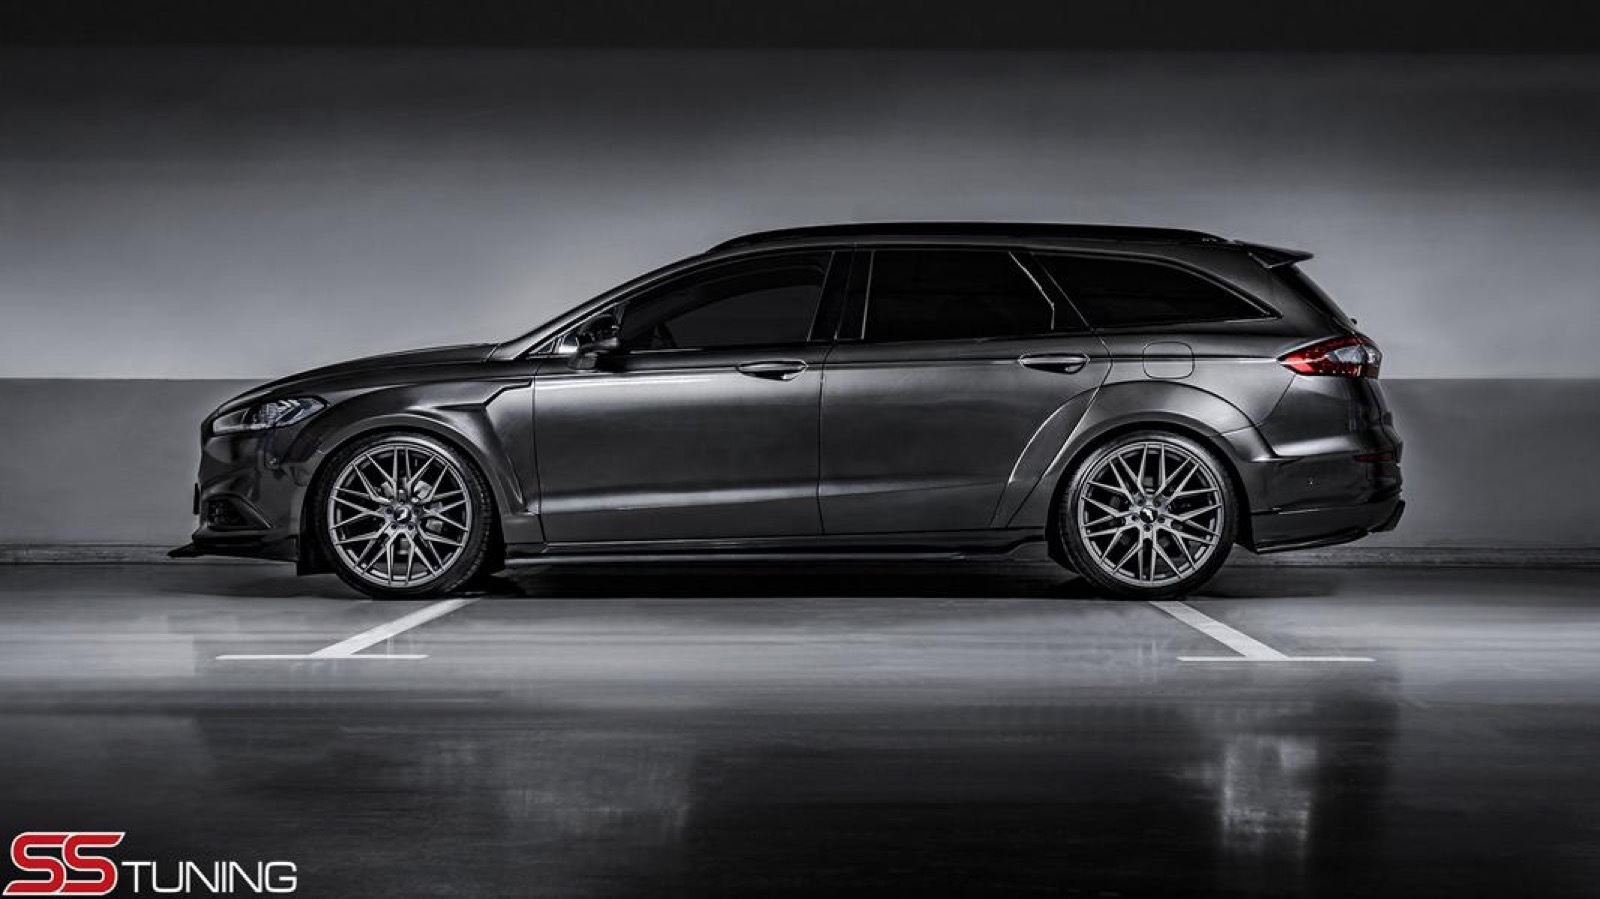 Ford_Mondeo_Estate_SS_Tuning_0005